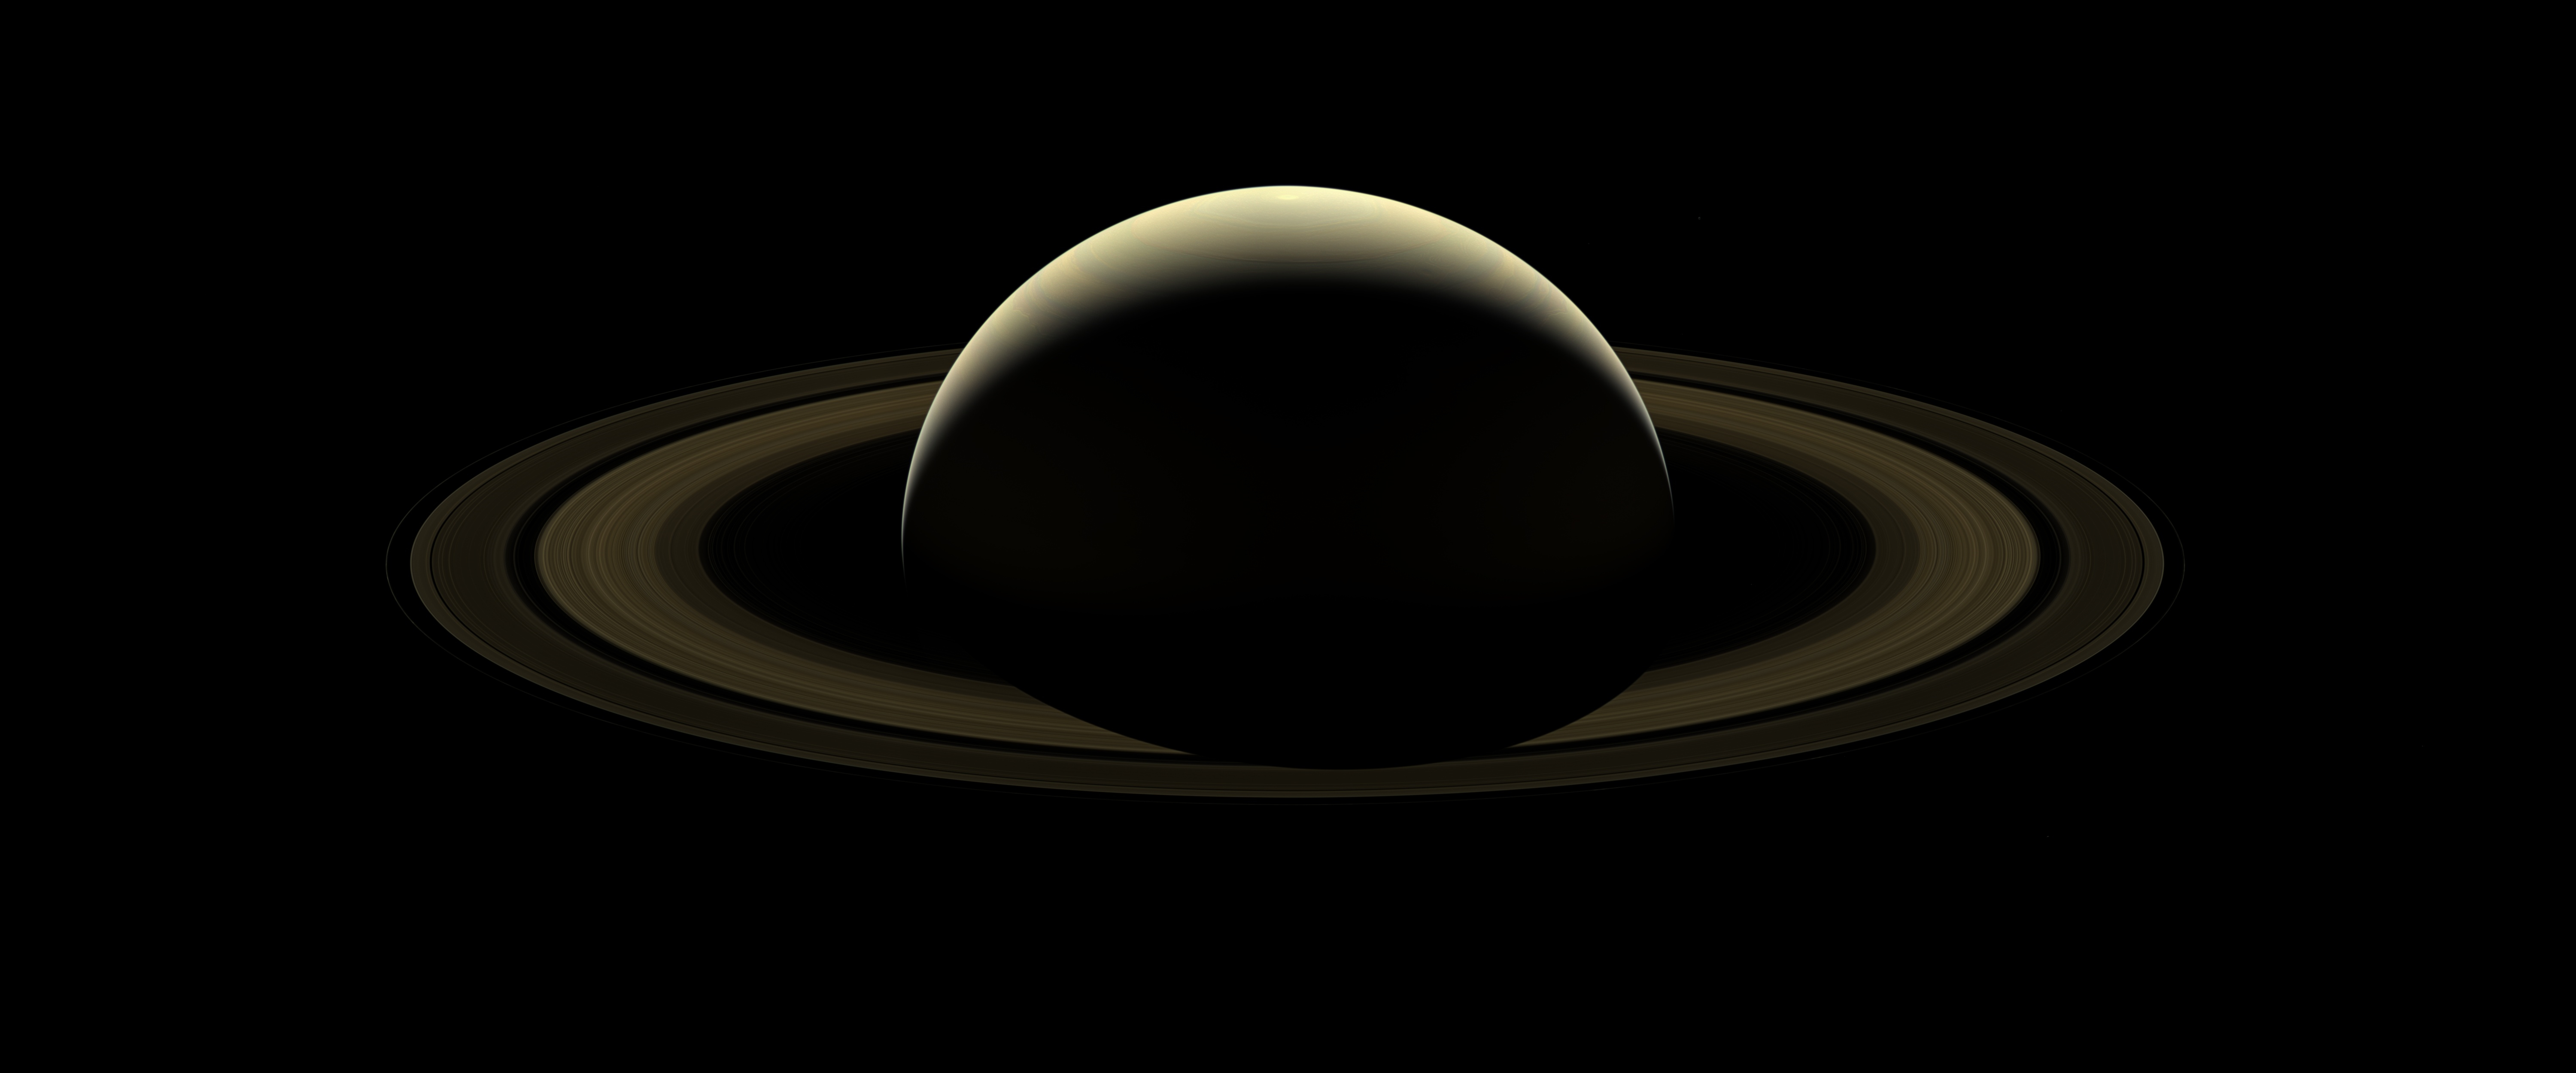 NASA's Cassini probe bids farewell to Saturn with epic image | DeviceDaily.com